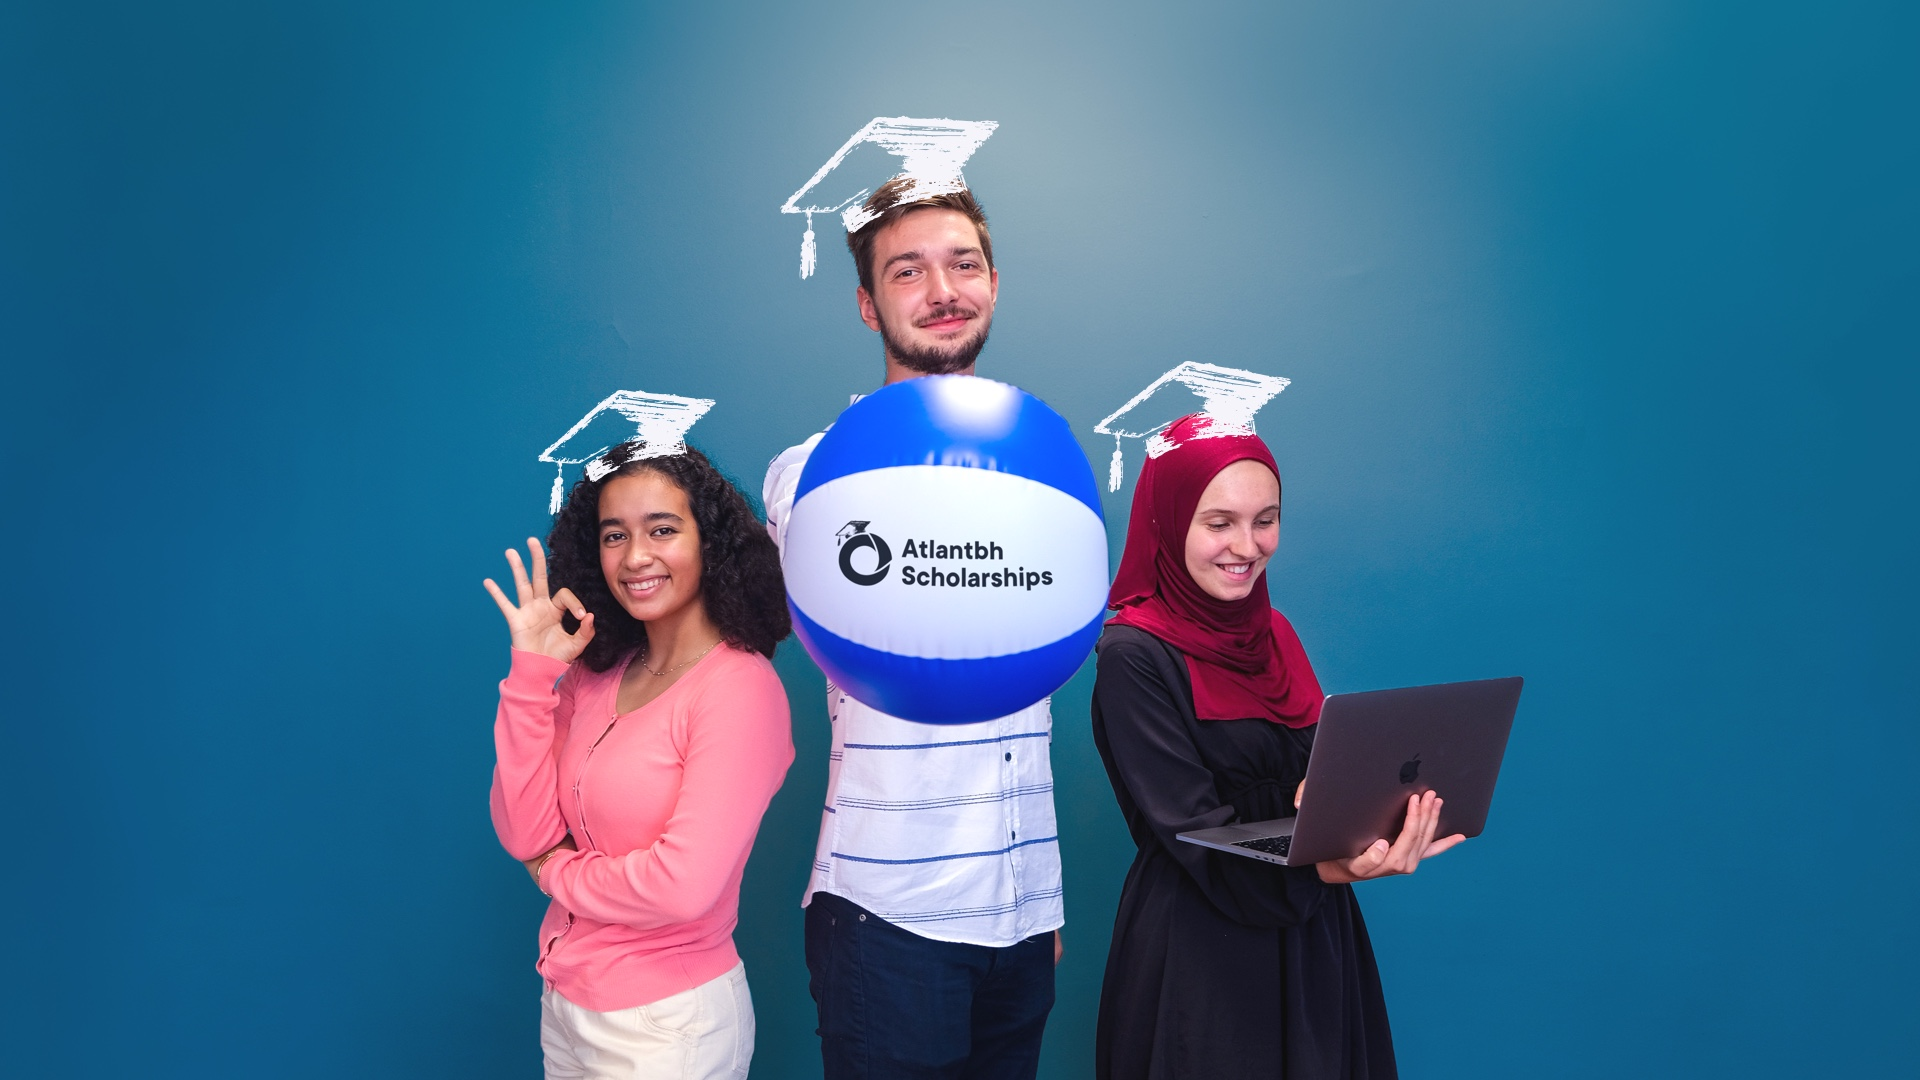 Atlantbh Scholarships in their fourth year!